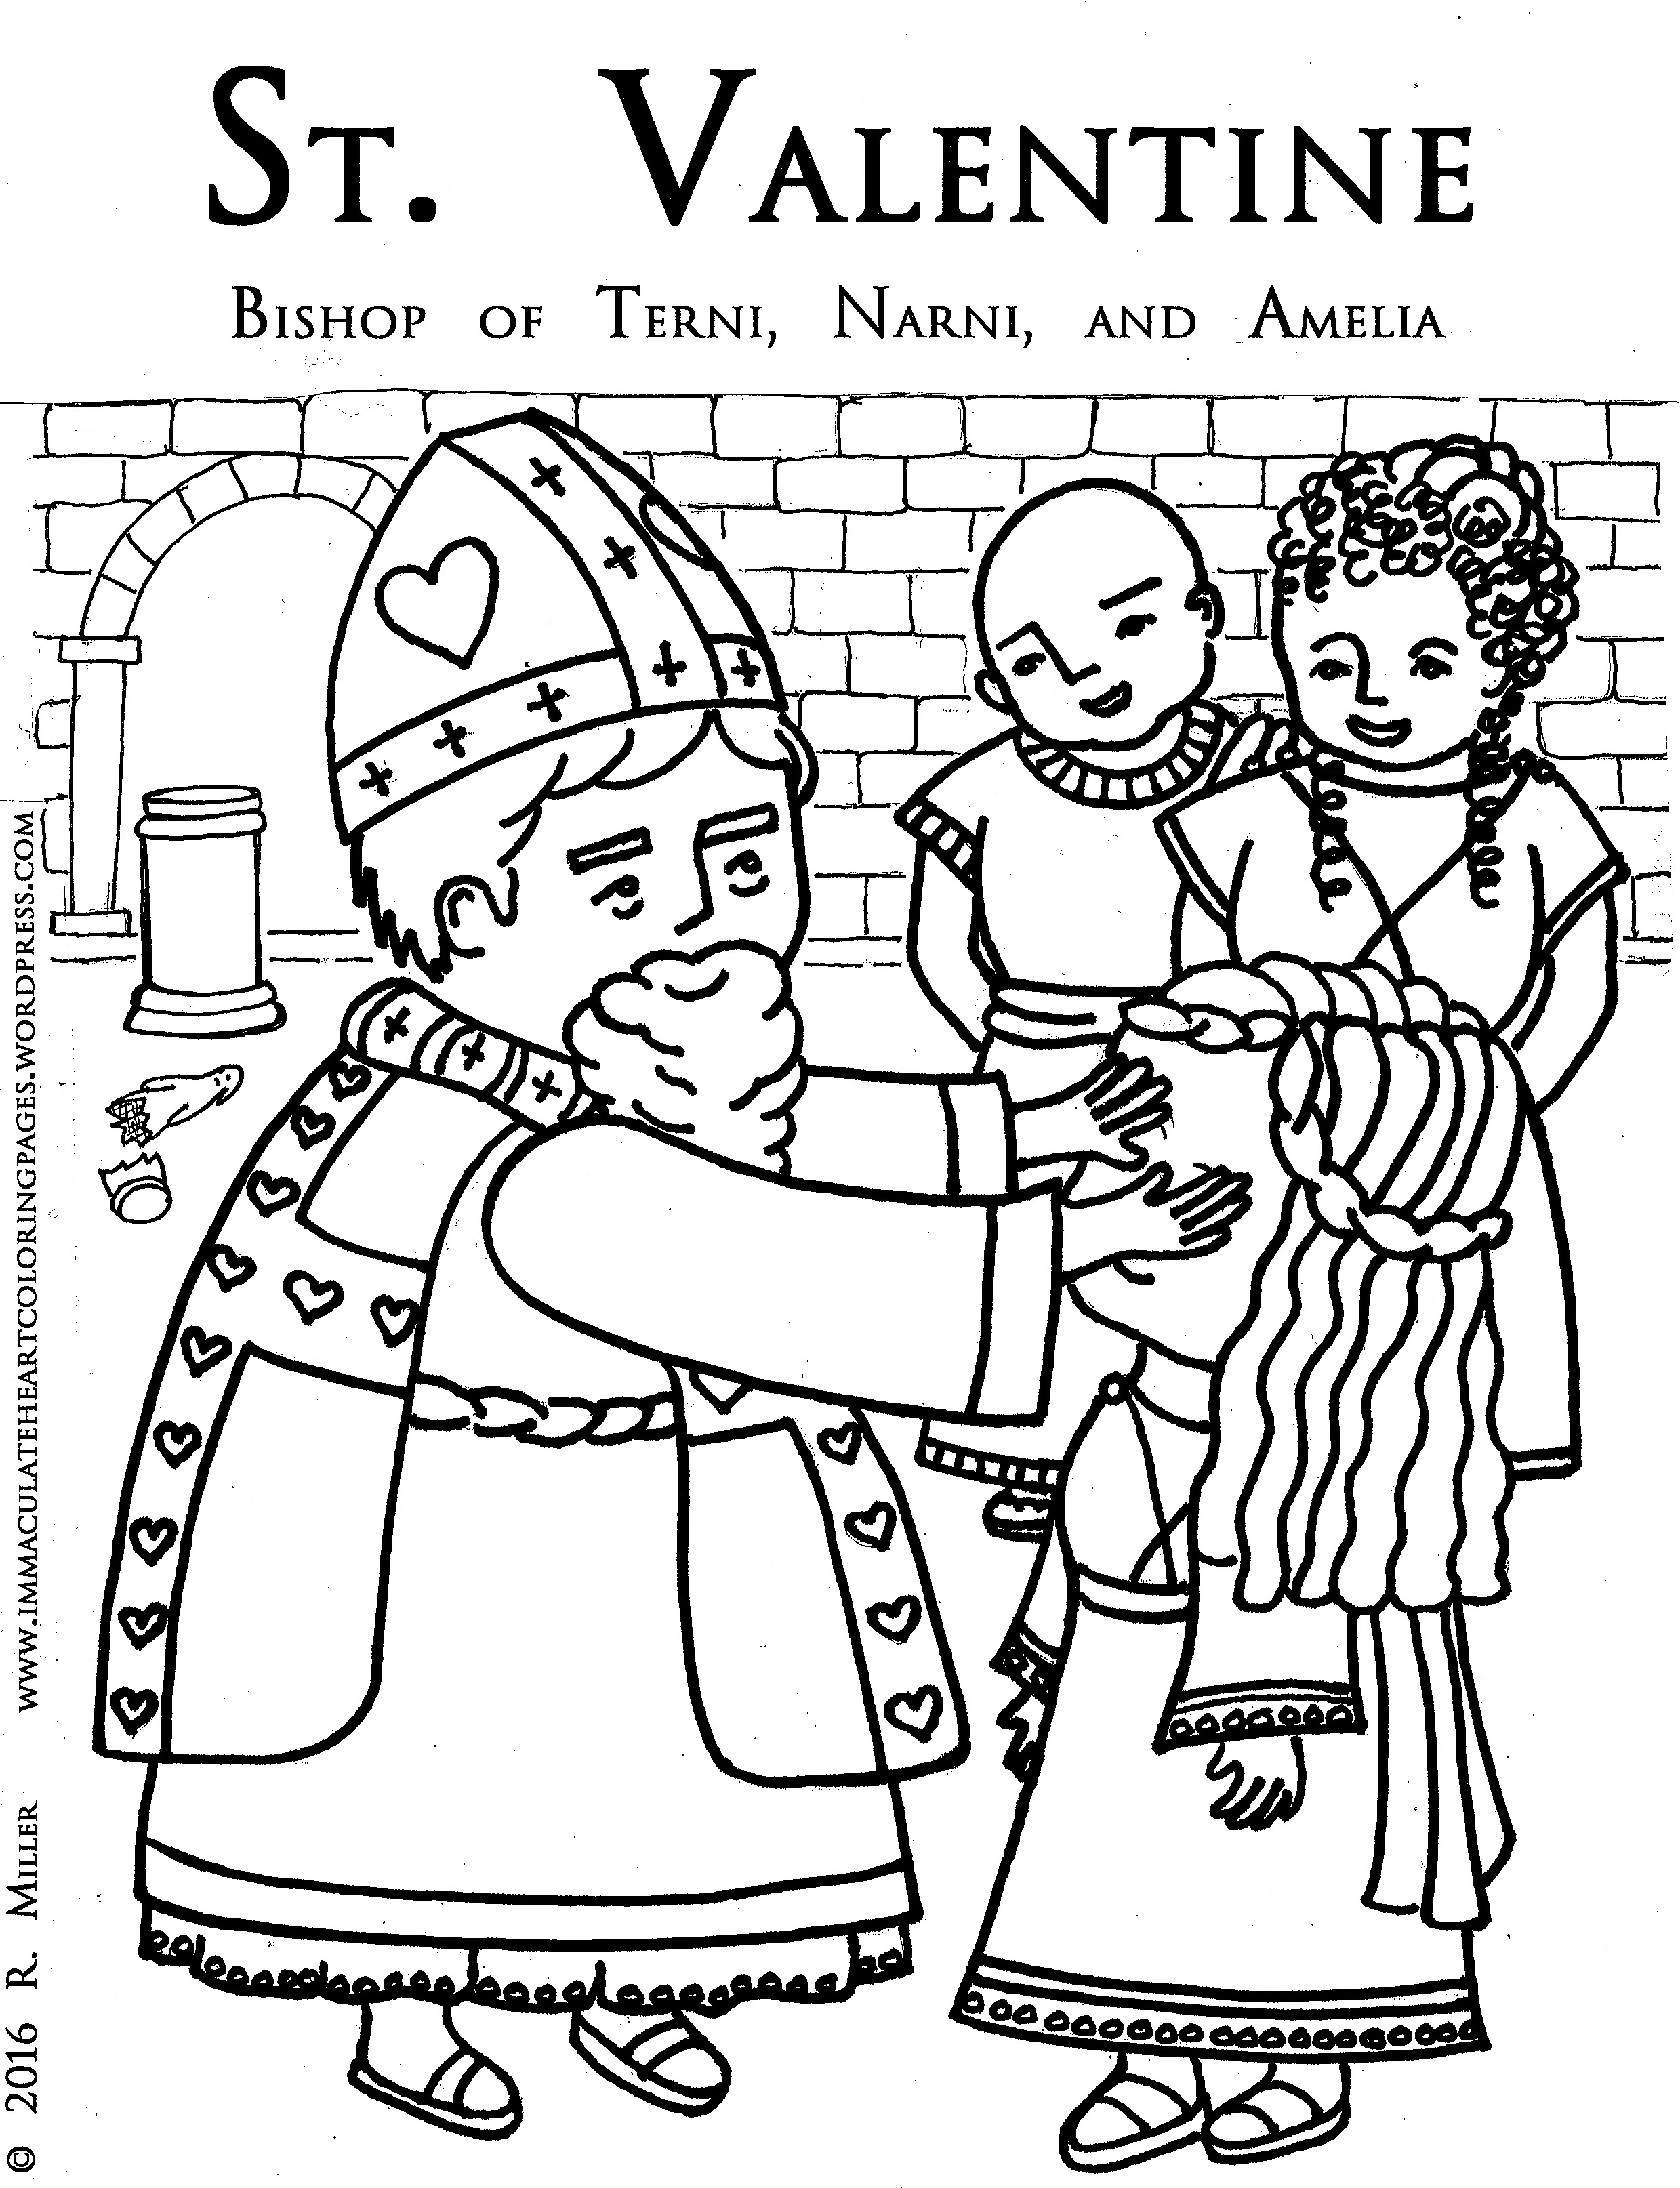 Faerlmarie Coloring Pages 34 St Valentine Coloring Pages